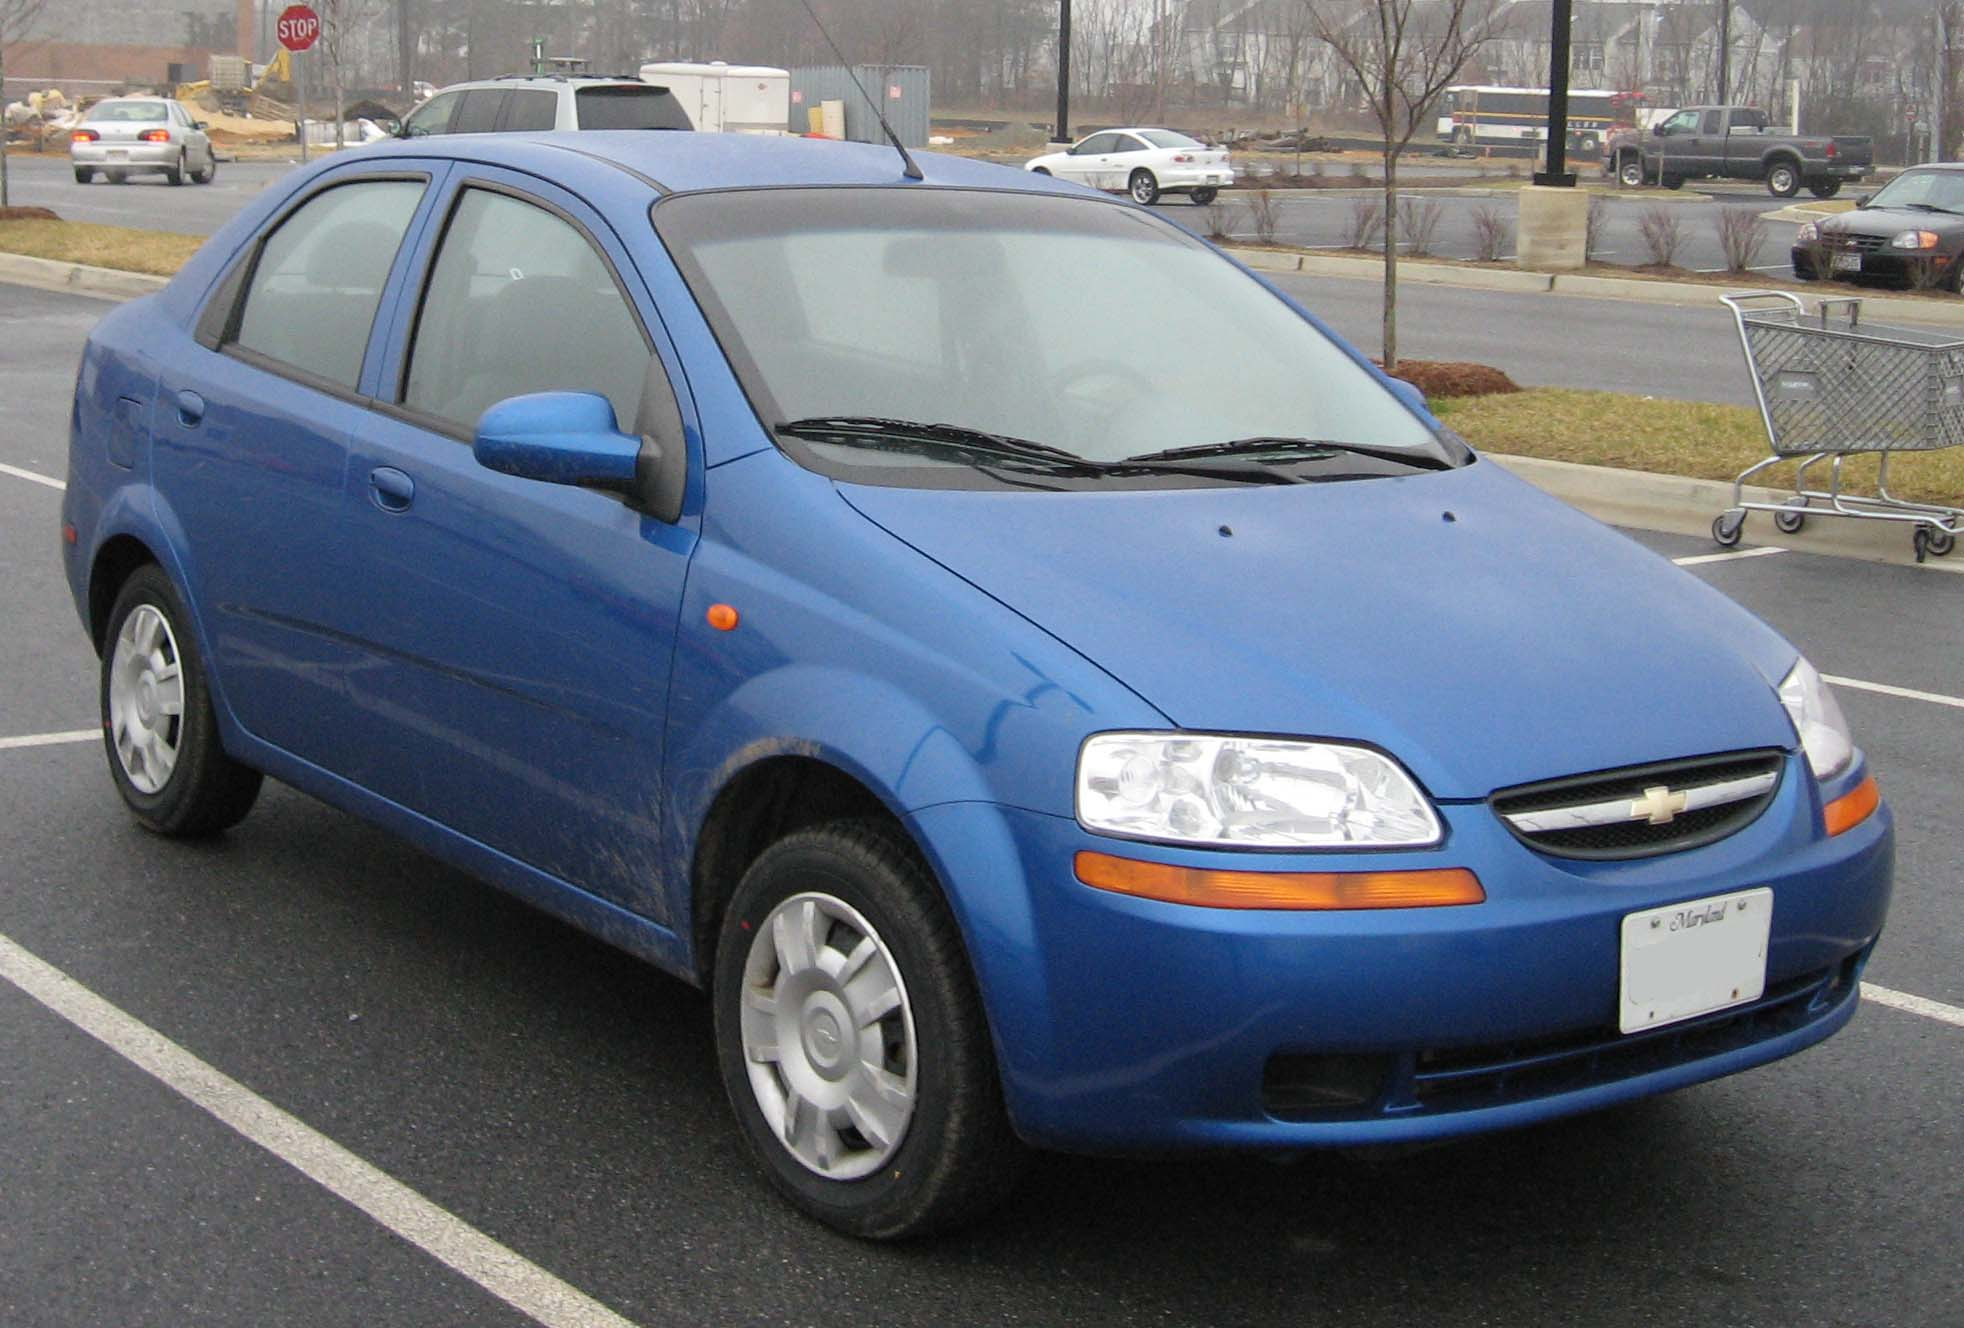 File:04-06 Chevrolet Aveo sedan 2.jpg - Wikimedia Commons